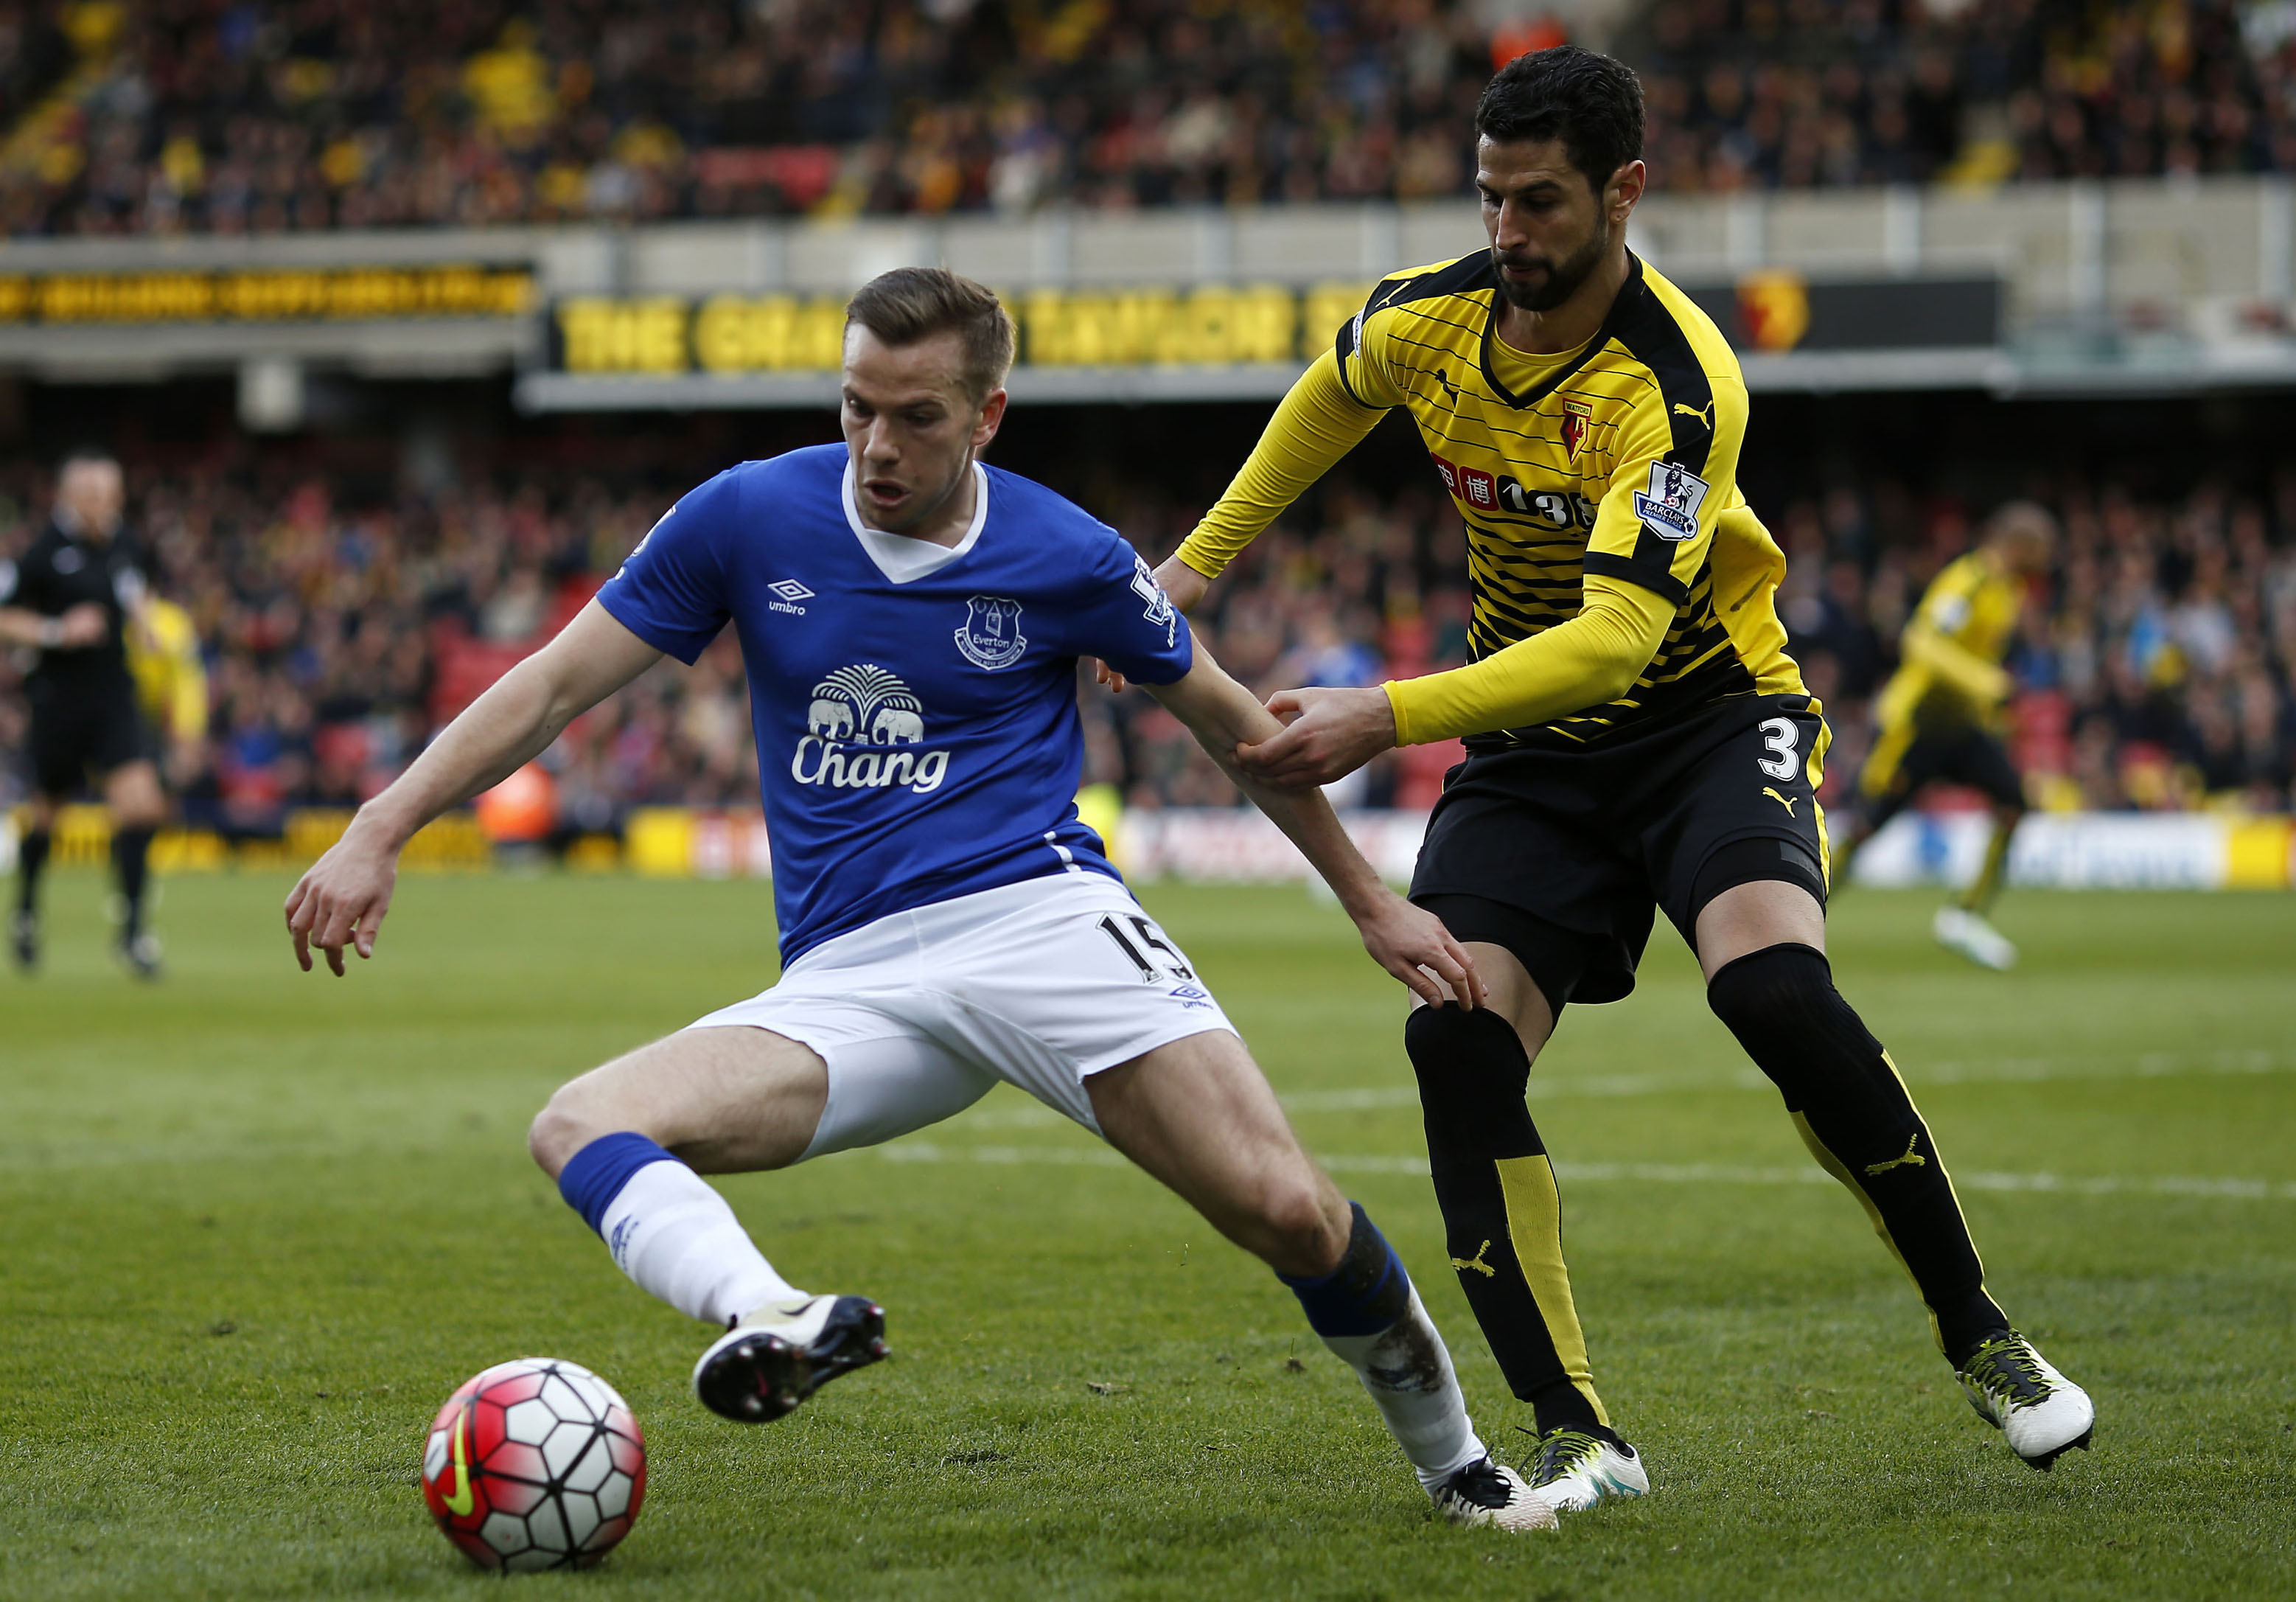 Everton-FC-Watford-English-Premier-League-Tom-Cleverley-Miguel-Angel-Britos